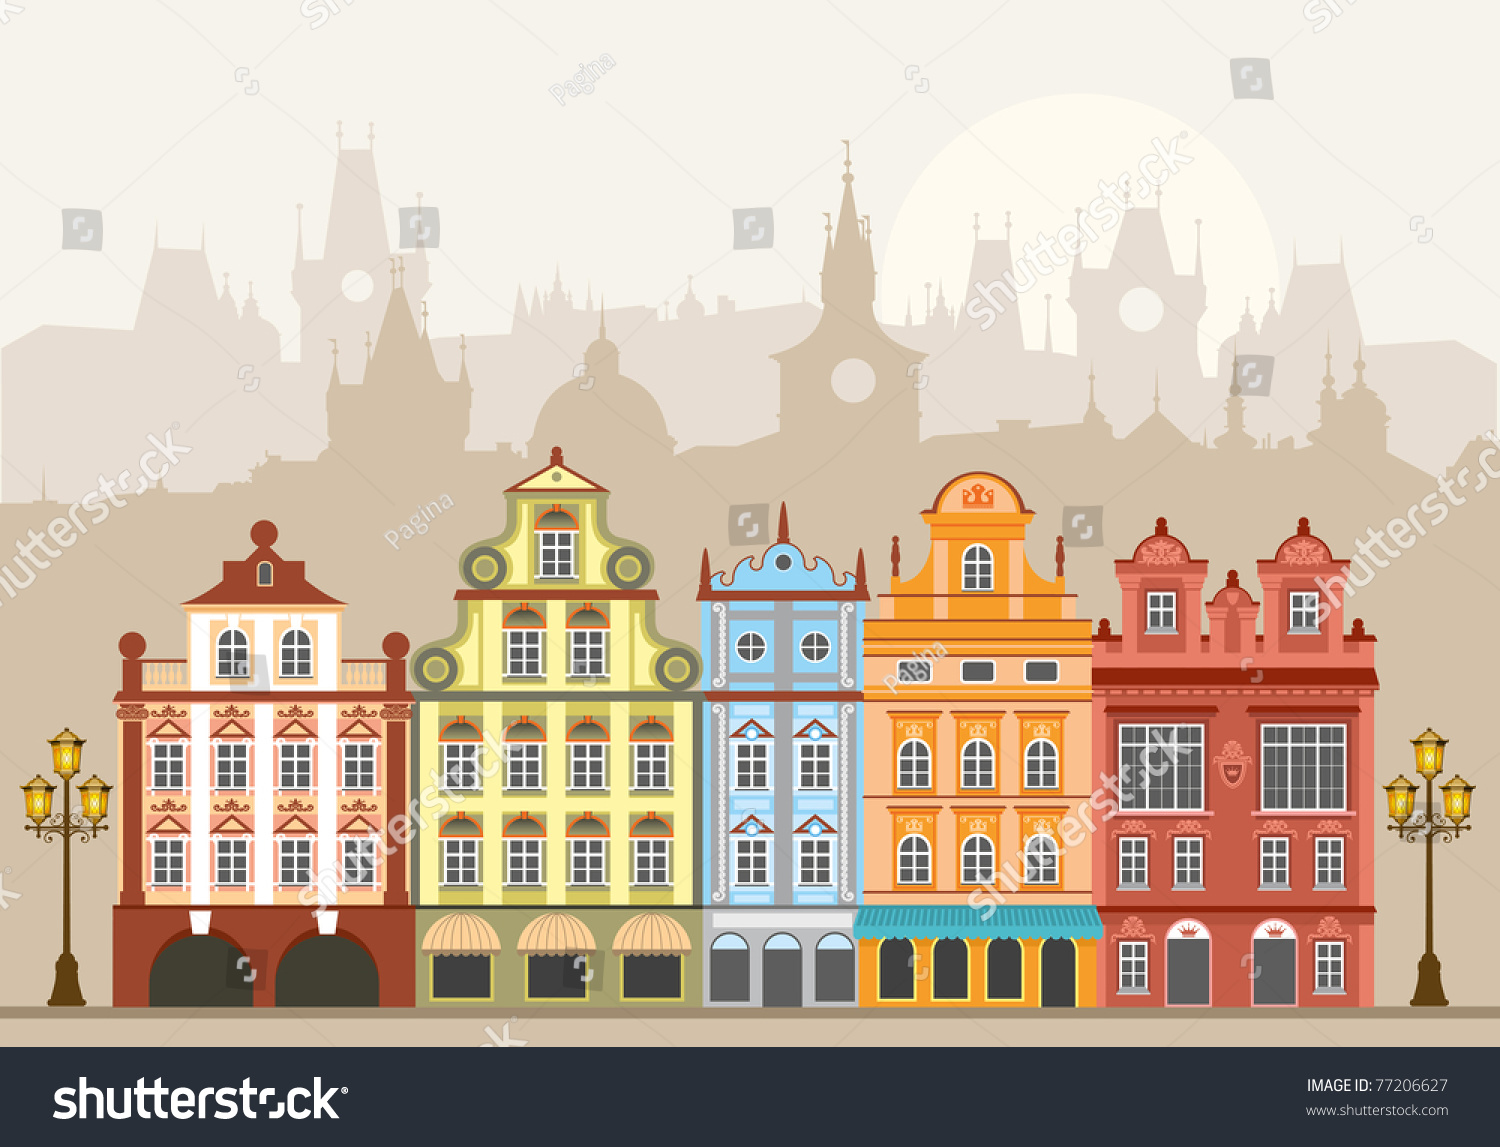 Street With Houses In Different rchitectural Styles nd olors ... - ^